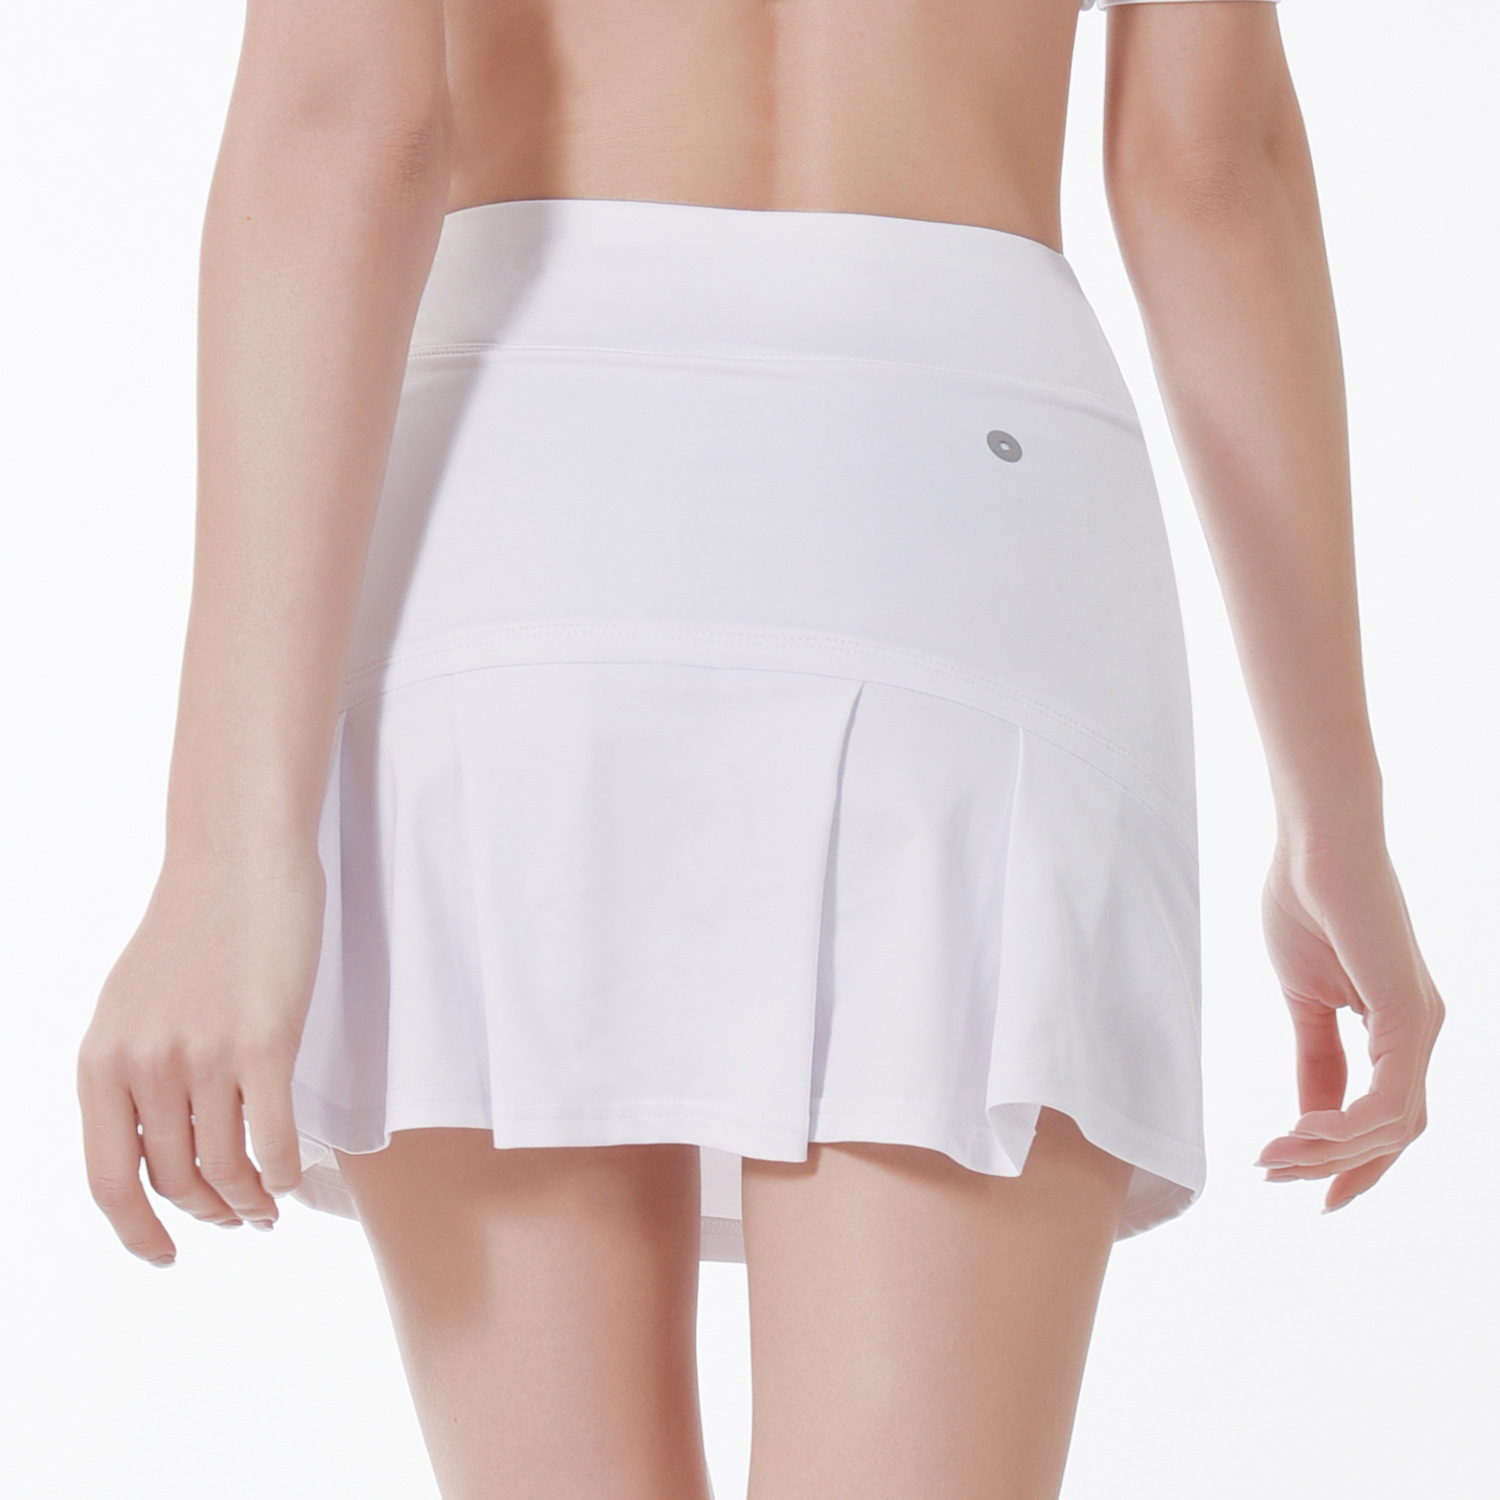 2019 New Fake Two-piece Sports Skirt Pants Invisible Pocket Quick-dry Lady Anti-naked Body Repair Bag Buttocks Skirt Pants